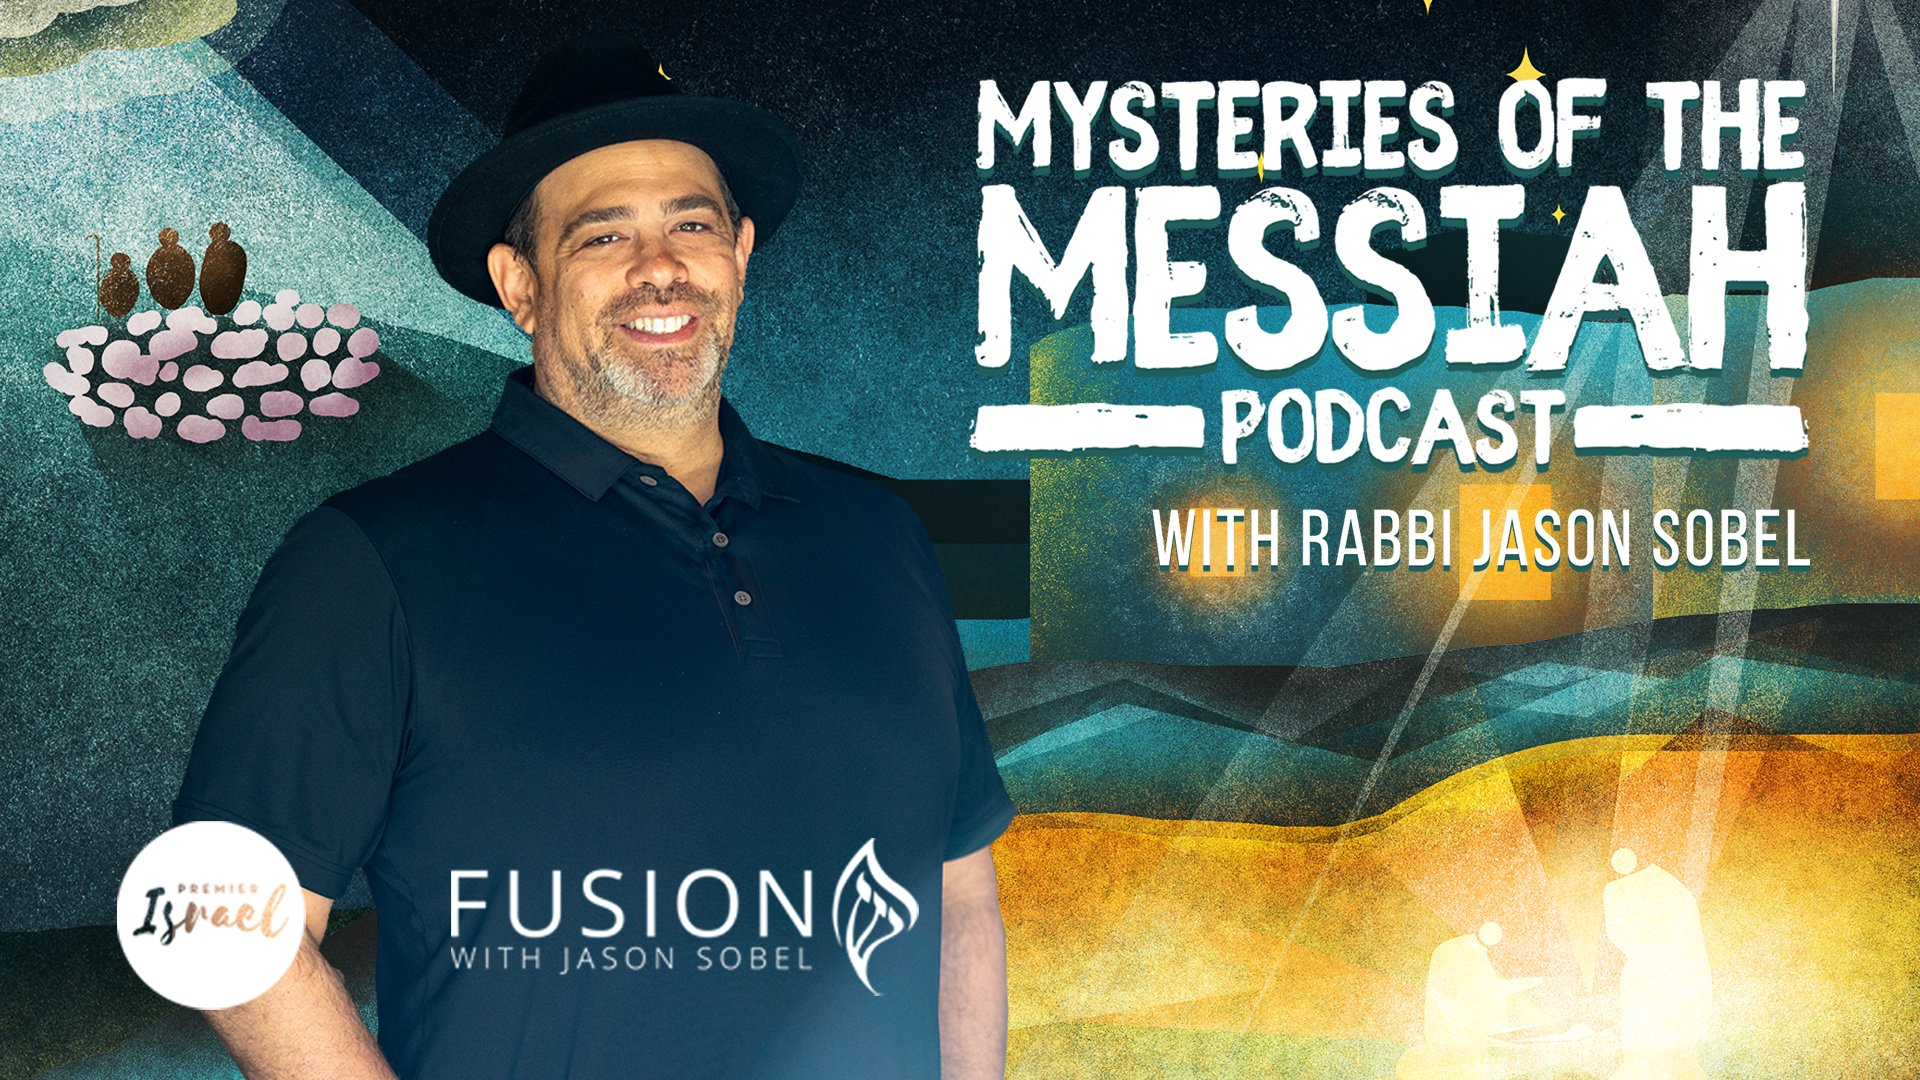 Mysteries of the Messiah Podcast wide